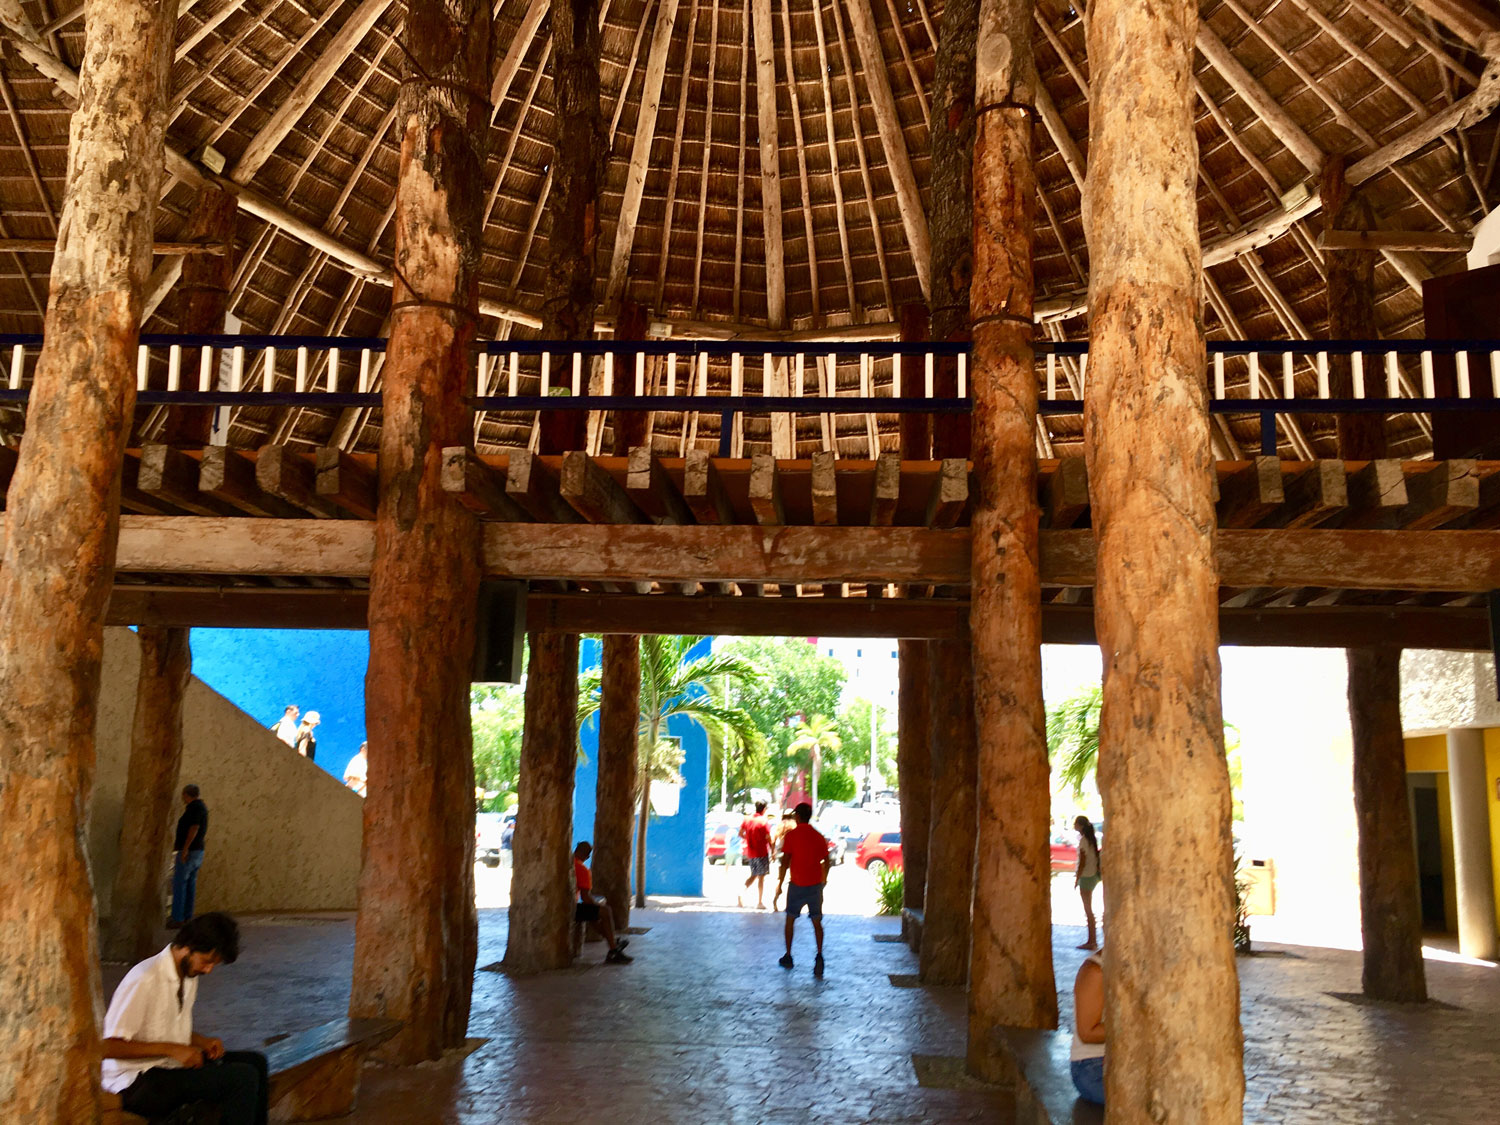 Go under the palapa with the ticket offices for the Captain Hook ship, the theatre and the car park. Public bathrooms are also here.